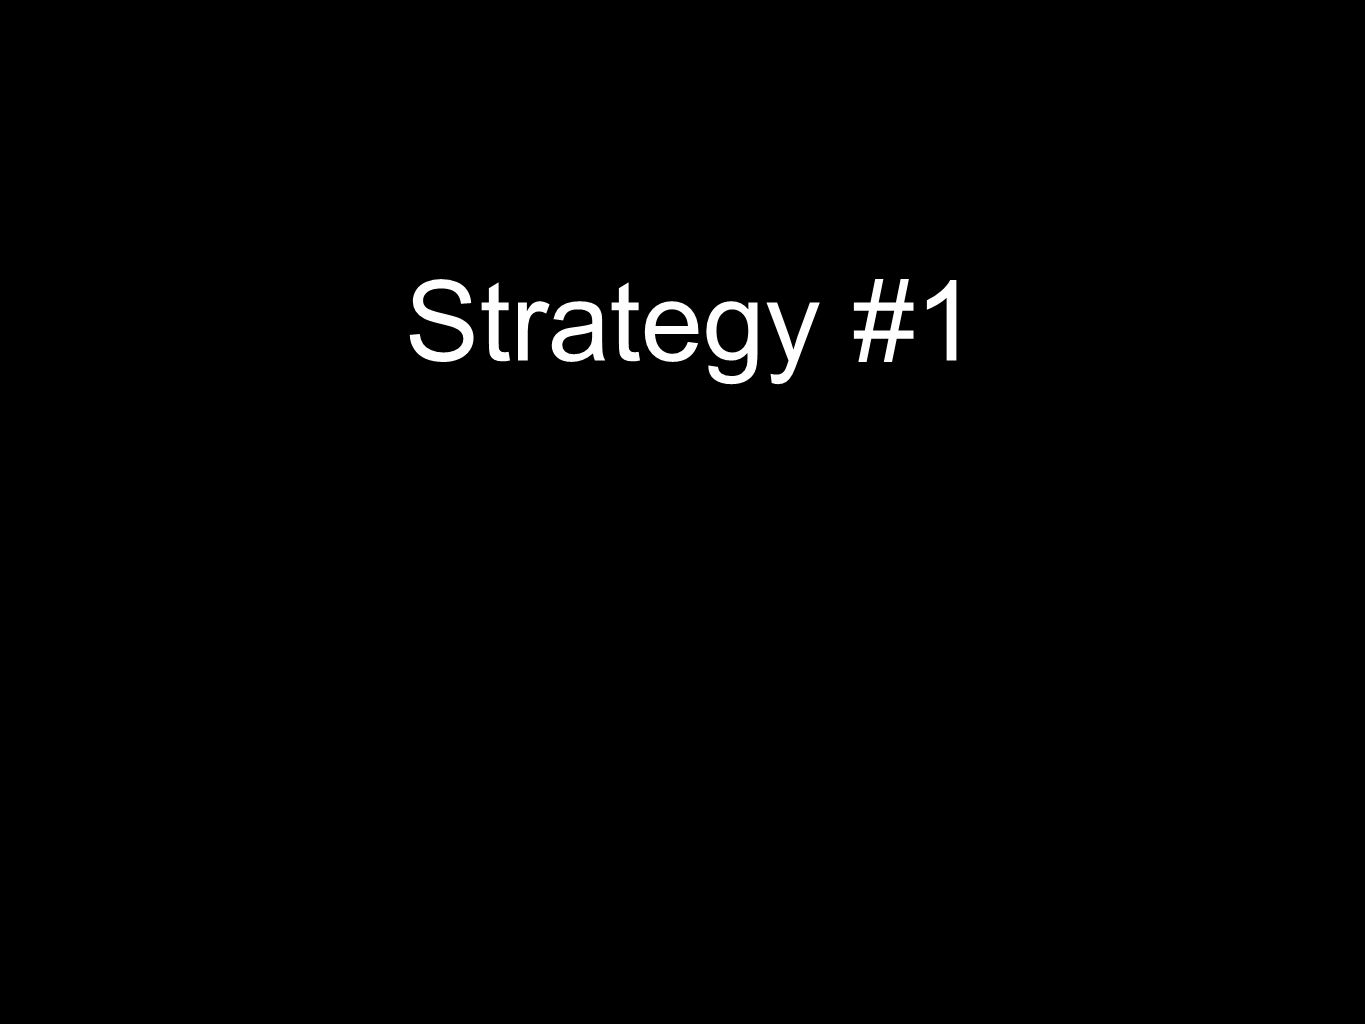 Strategy #1